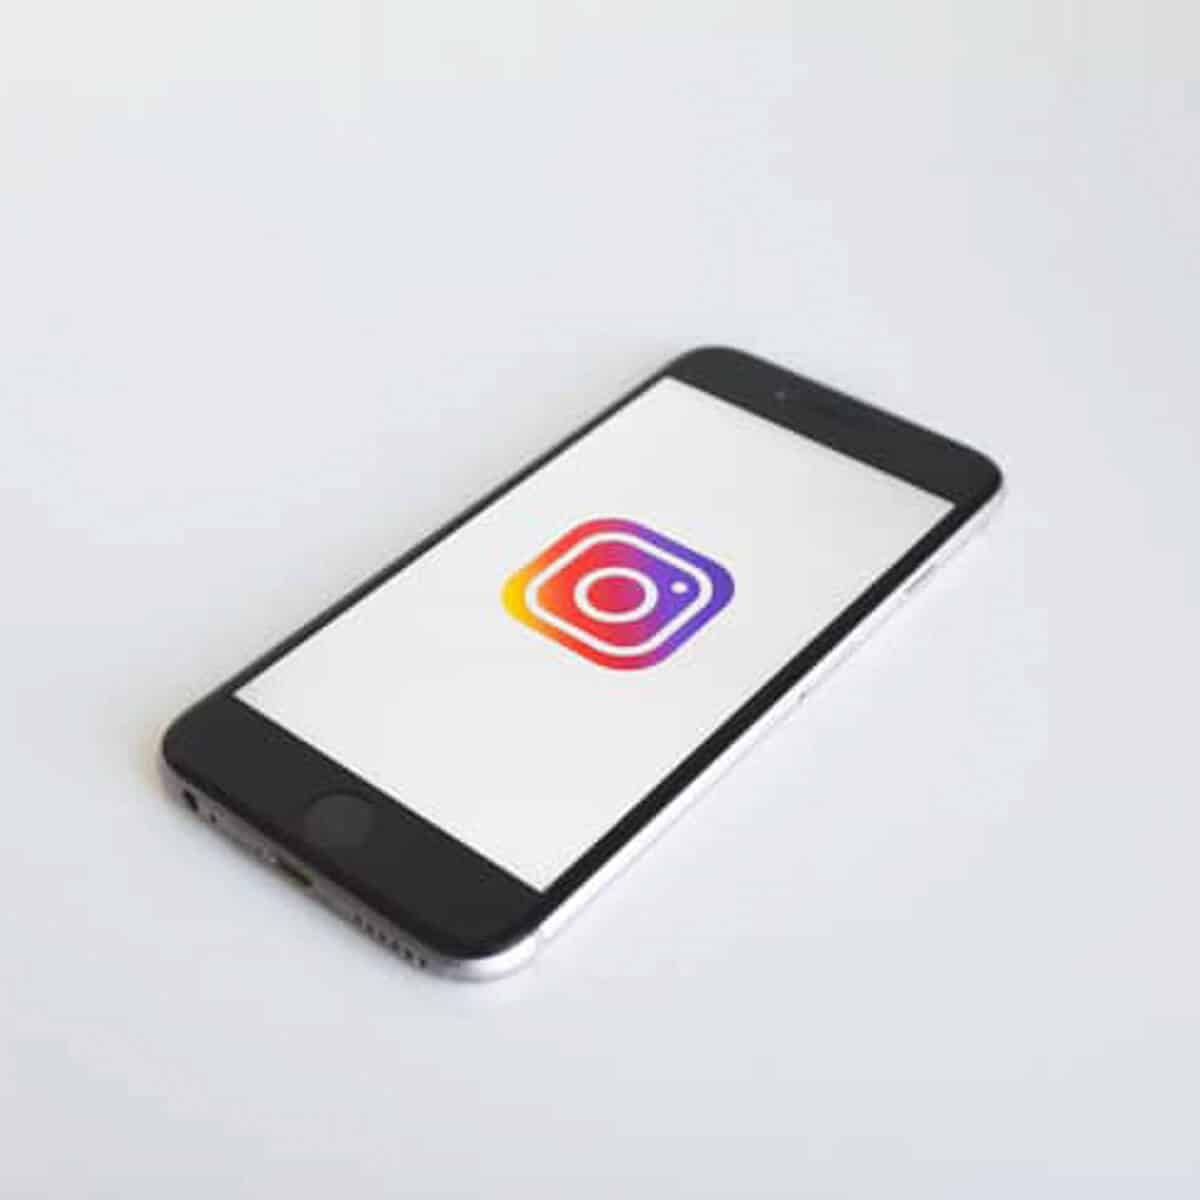 A phone showing the Instagram logo.